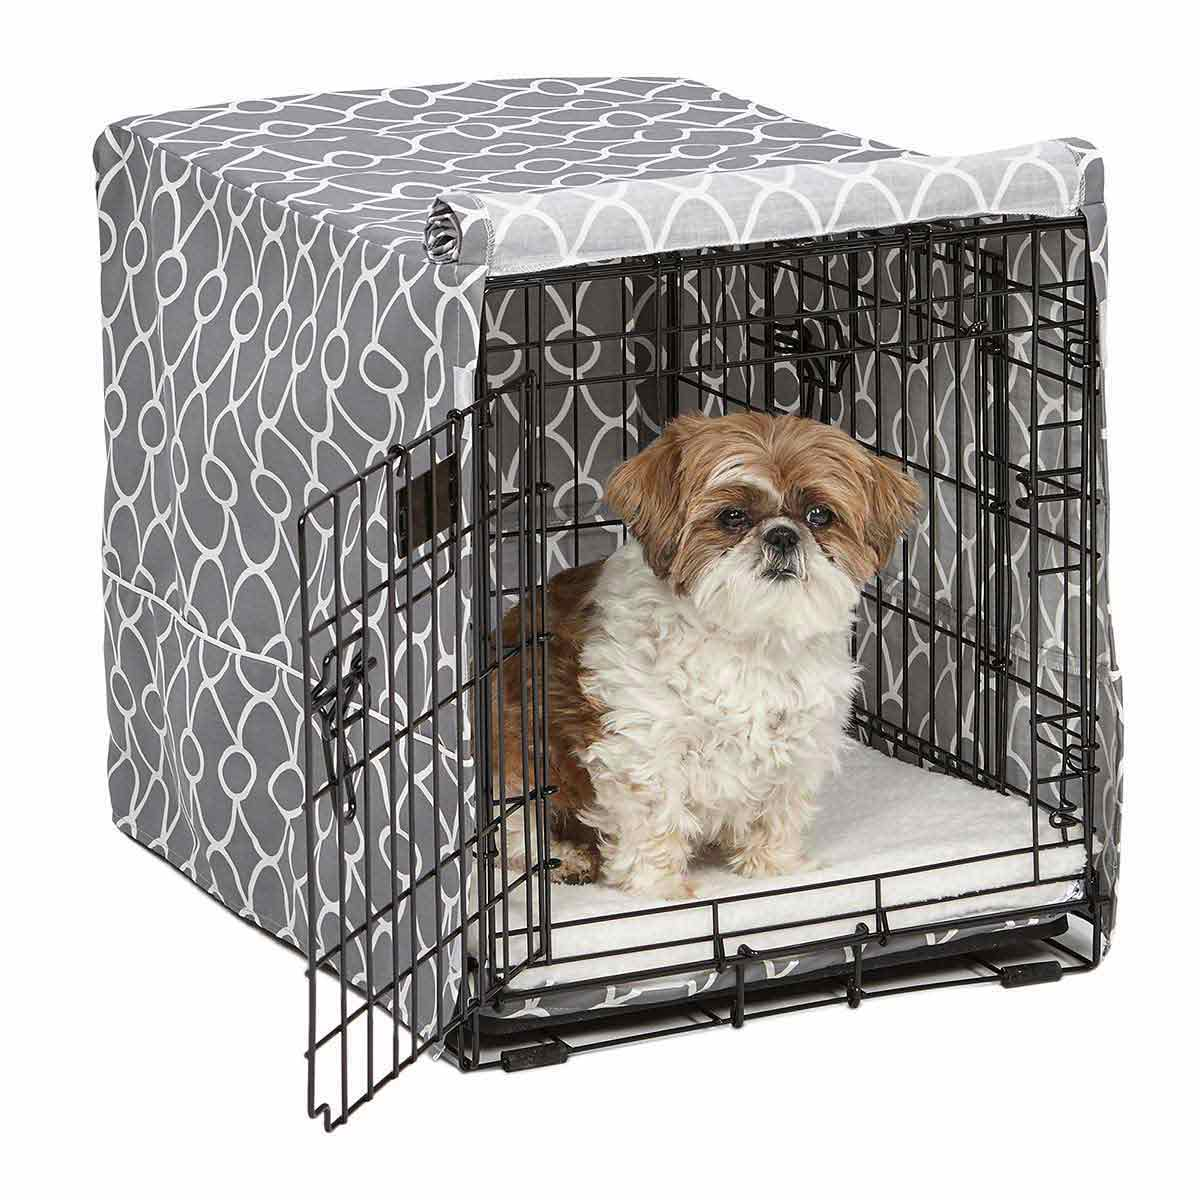 24 inch Quiet Time Crate Covers Calm Pets - available at Ryan's Pet Supplies